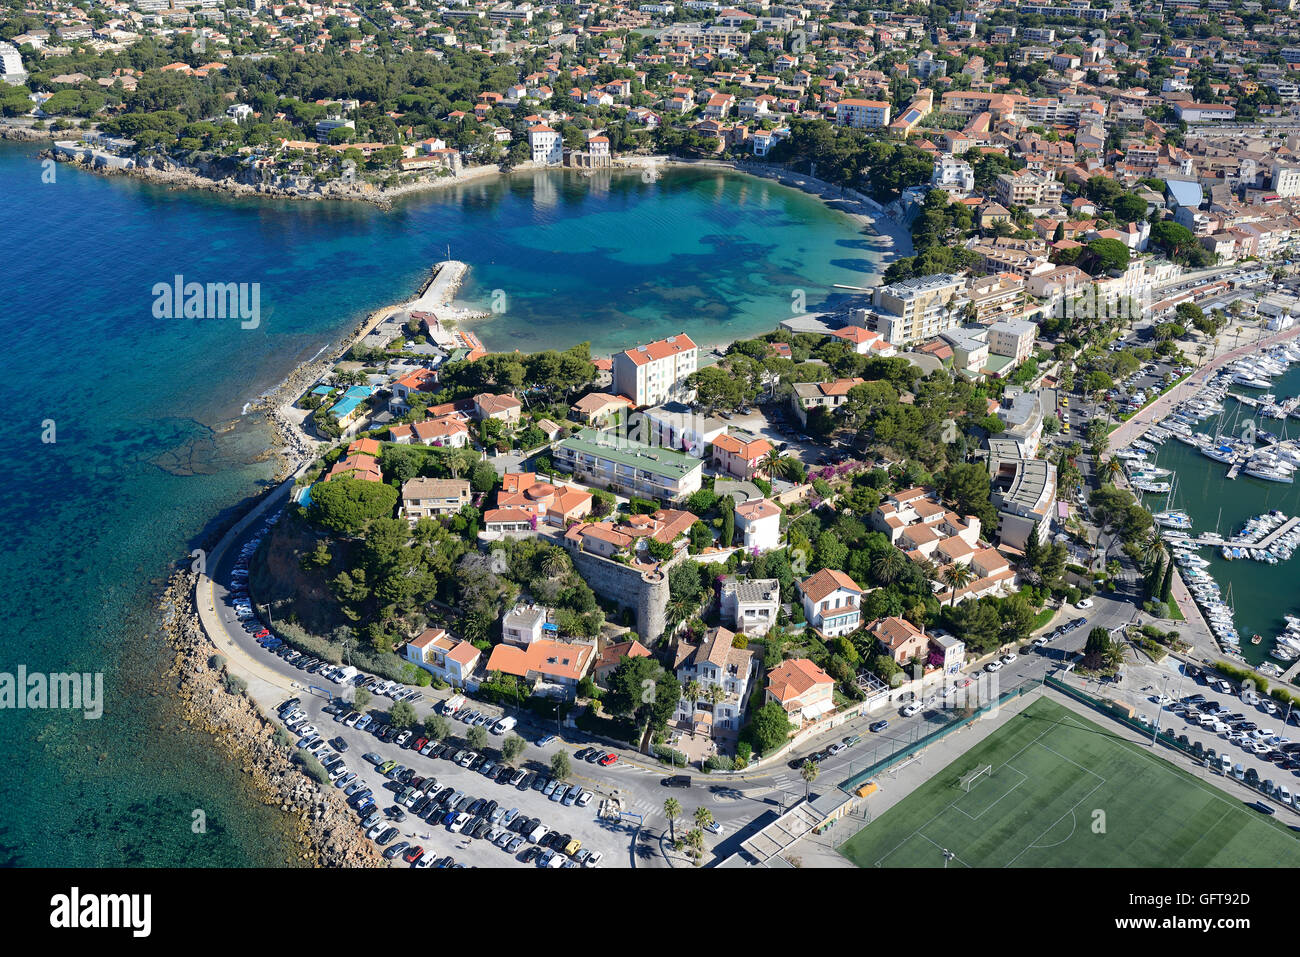 SEASIDE RESORT OF BANDOL WITH ITS BLUE COVE (aerial view). Provence, France. - Stock Image